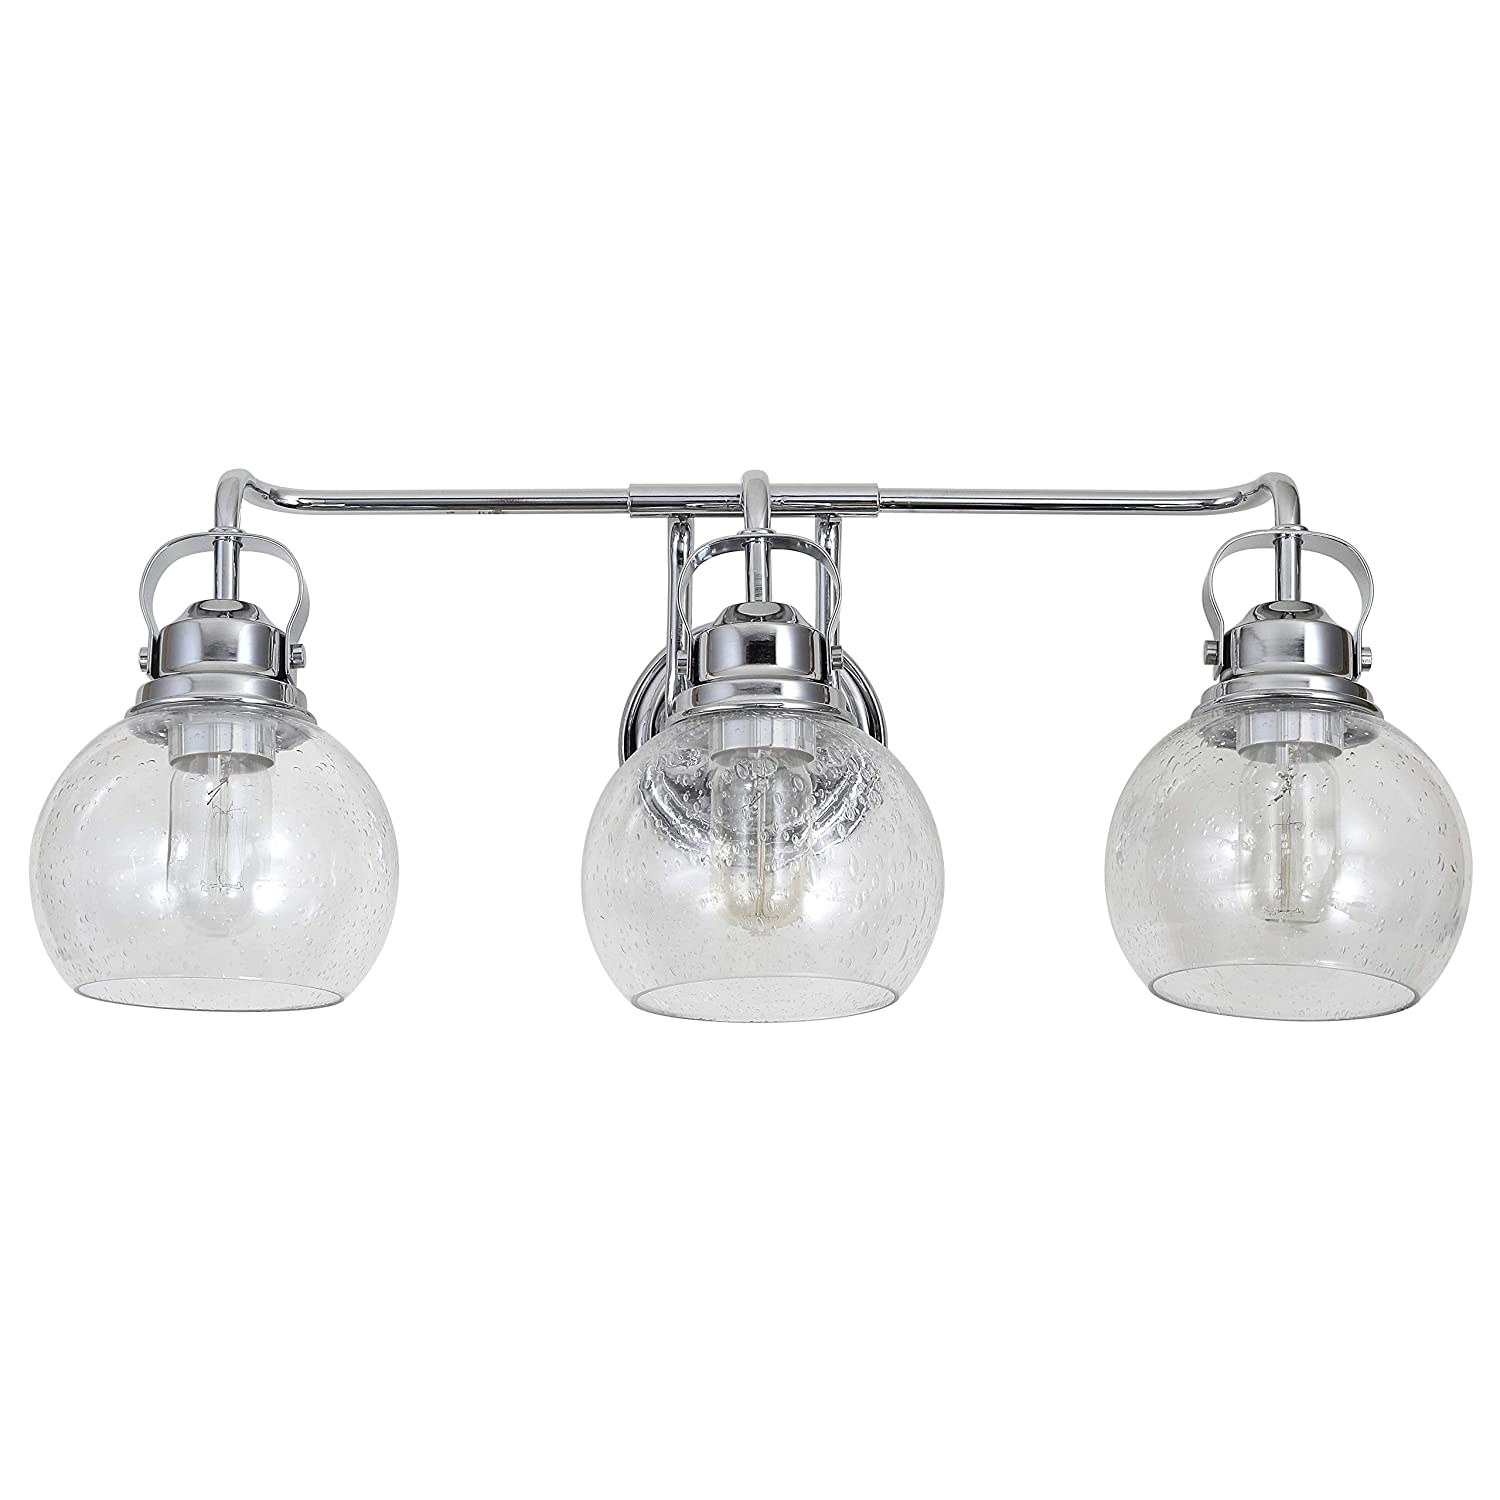 JONATHAN Y JYL7405A Shirley 24 3-Light Metal Bubbled Glass Vanity, Chrome Clear